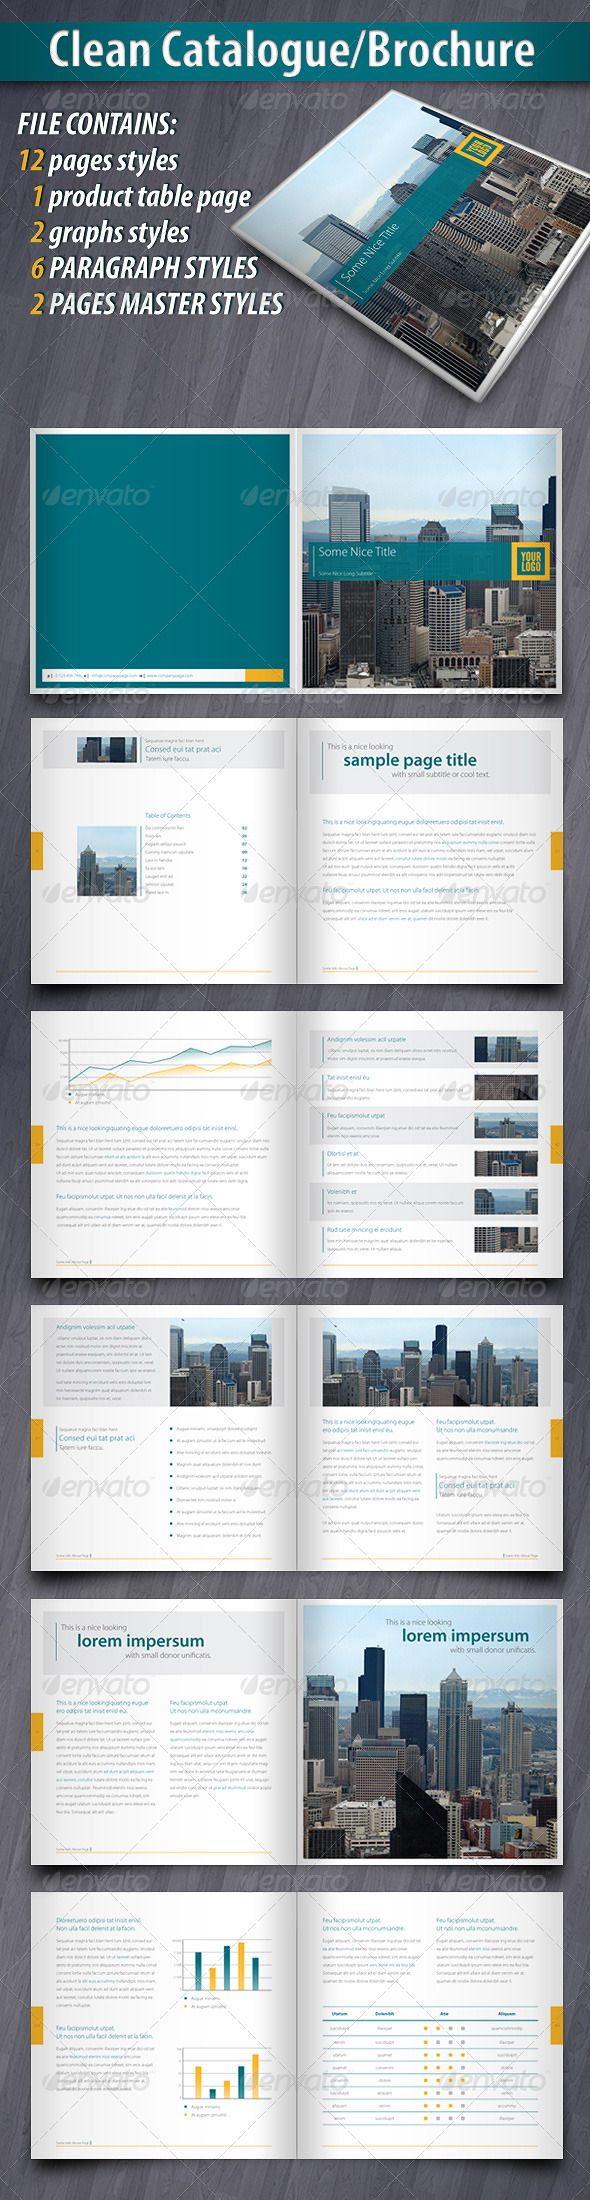 Comfortable 1 Page Resumes Huge 1 Week Calendar Template Rectangular 1099 Agreement Template 11 Vuze Search Templates Youthful 15 Year Old Resume Example Soft2 Week Notice Templates 49 Best Images About Brochure On Pinterest | Creative Brochure ..